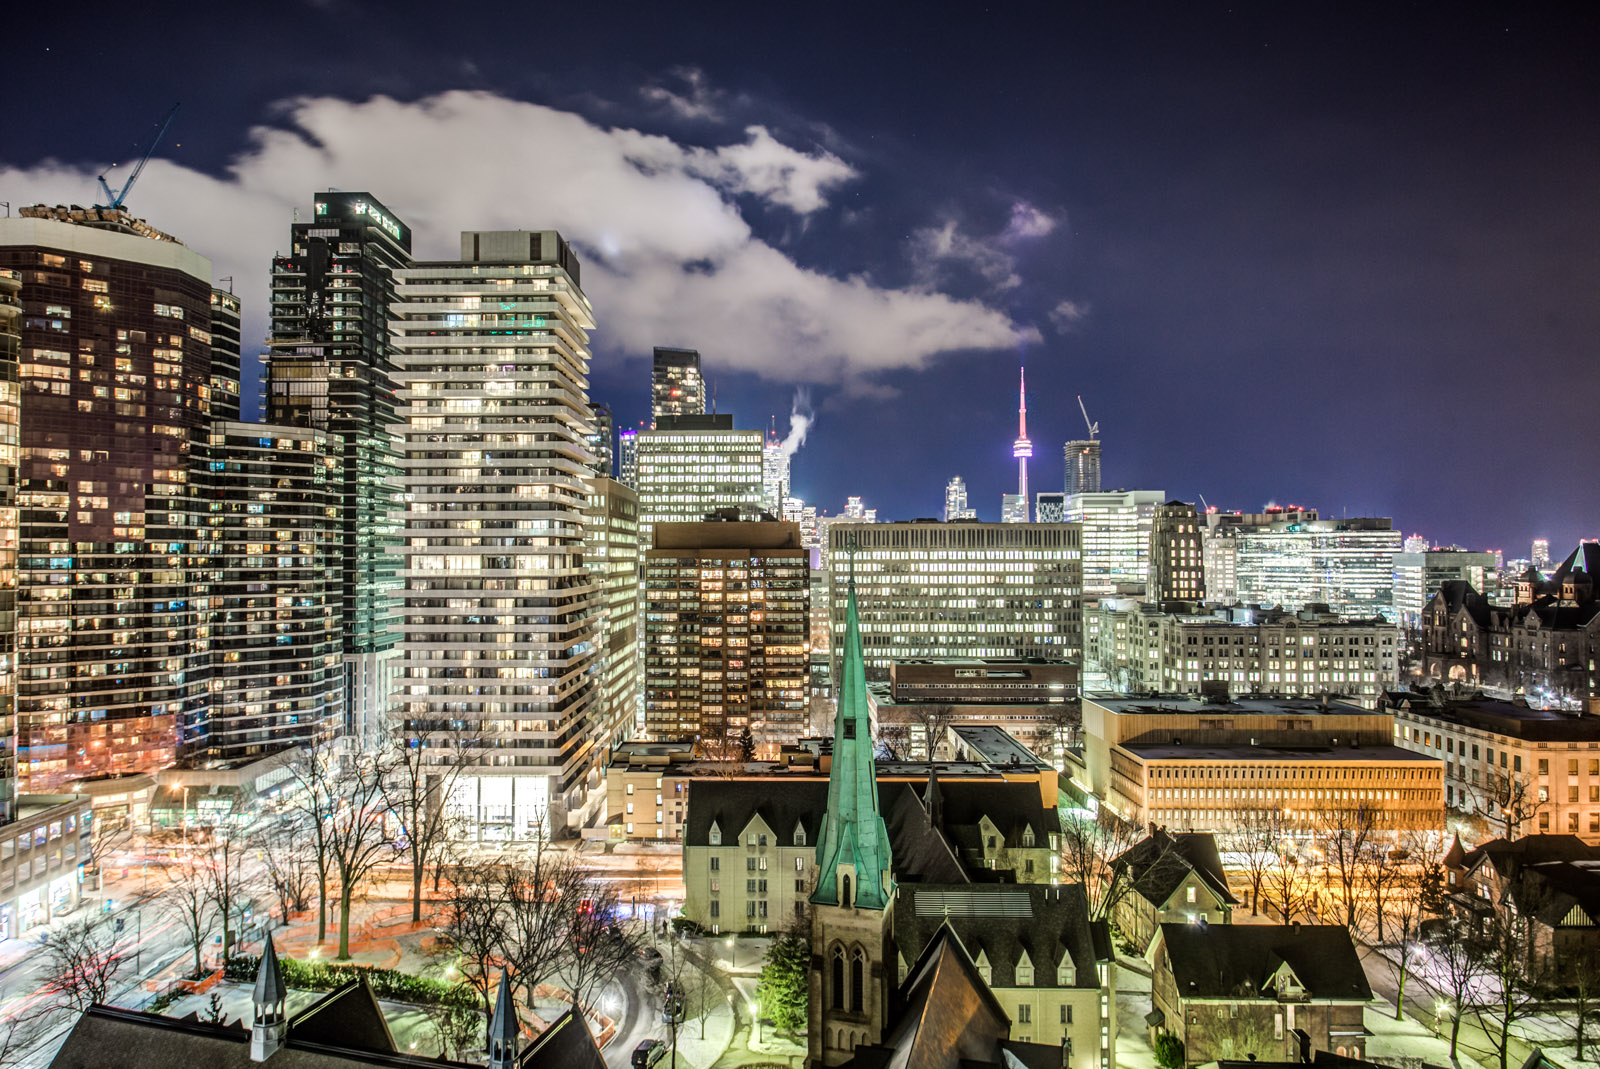 Night view of Toronto skyline from balcony of 5 St Mary St at U Condominiums.